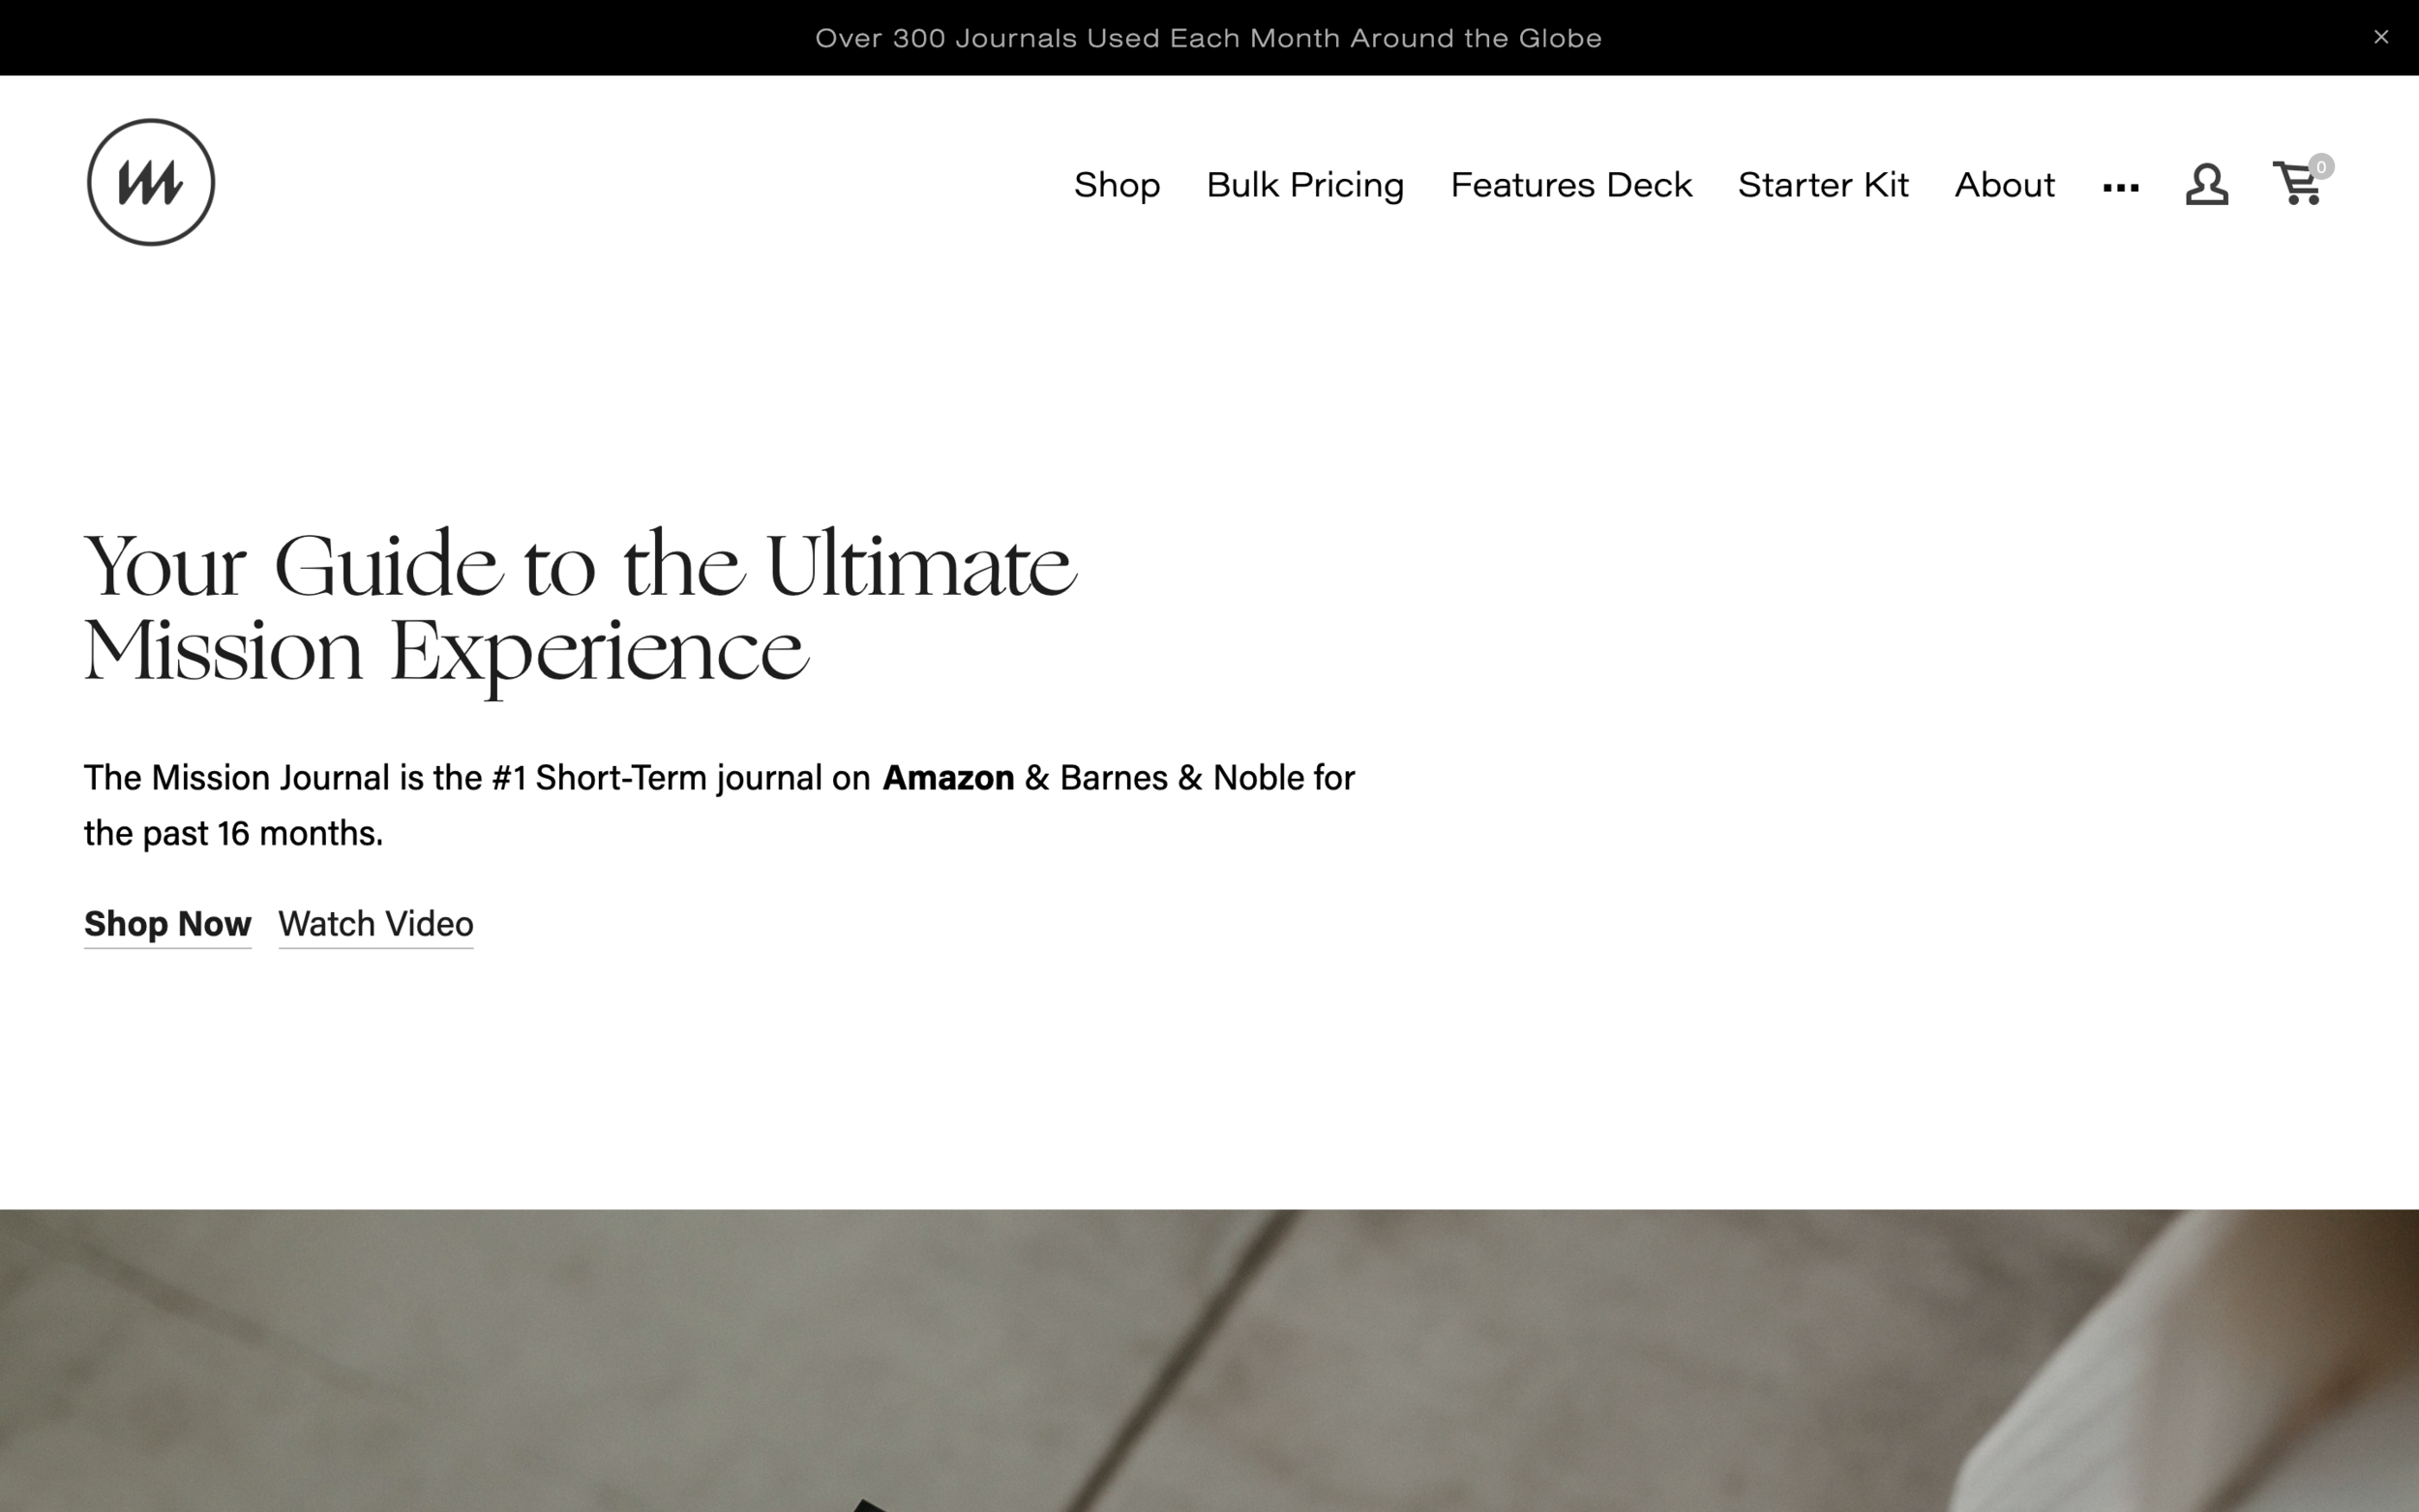 themissionjournal.com - Modern Squarespace e-Commerce SolutionThe Mission Journal's website is a culmination of timeless design, modern layout, responsive-forward approach and informative content. The end result is user friendly and is a great home for the product on the internet.